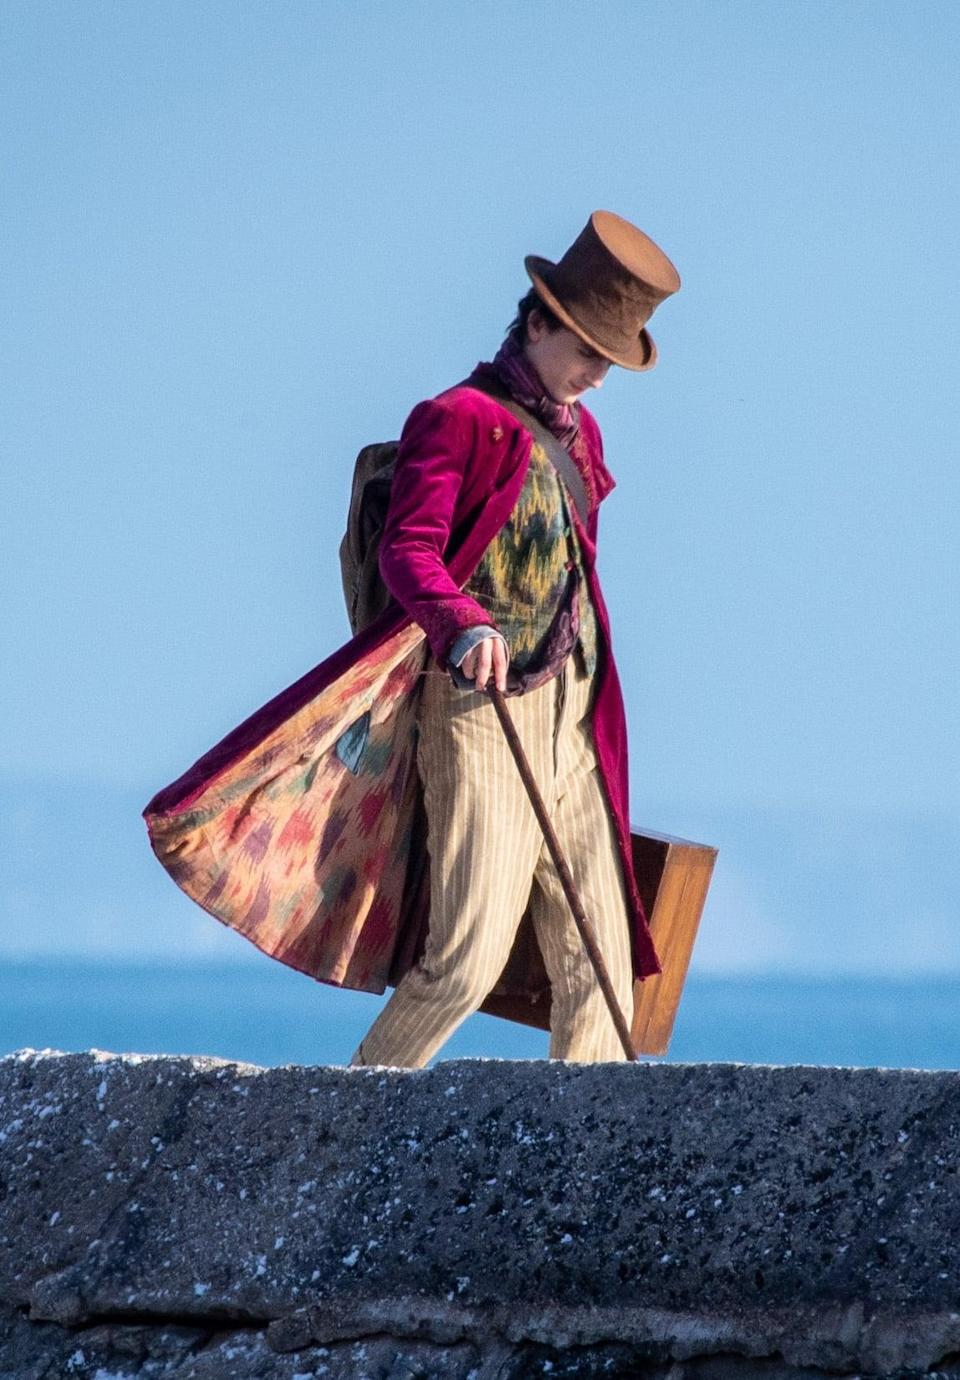 <p>Shoutout to the breeze in England for revealing the colorful underside of Timothée's Wonka coat. As for the layers underneath, he's rocking a pink and purple patterned scarf tucked into a black and mustard button-up waistcoat.</p>